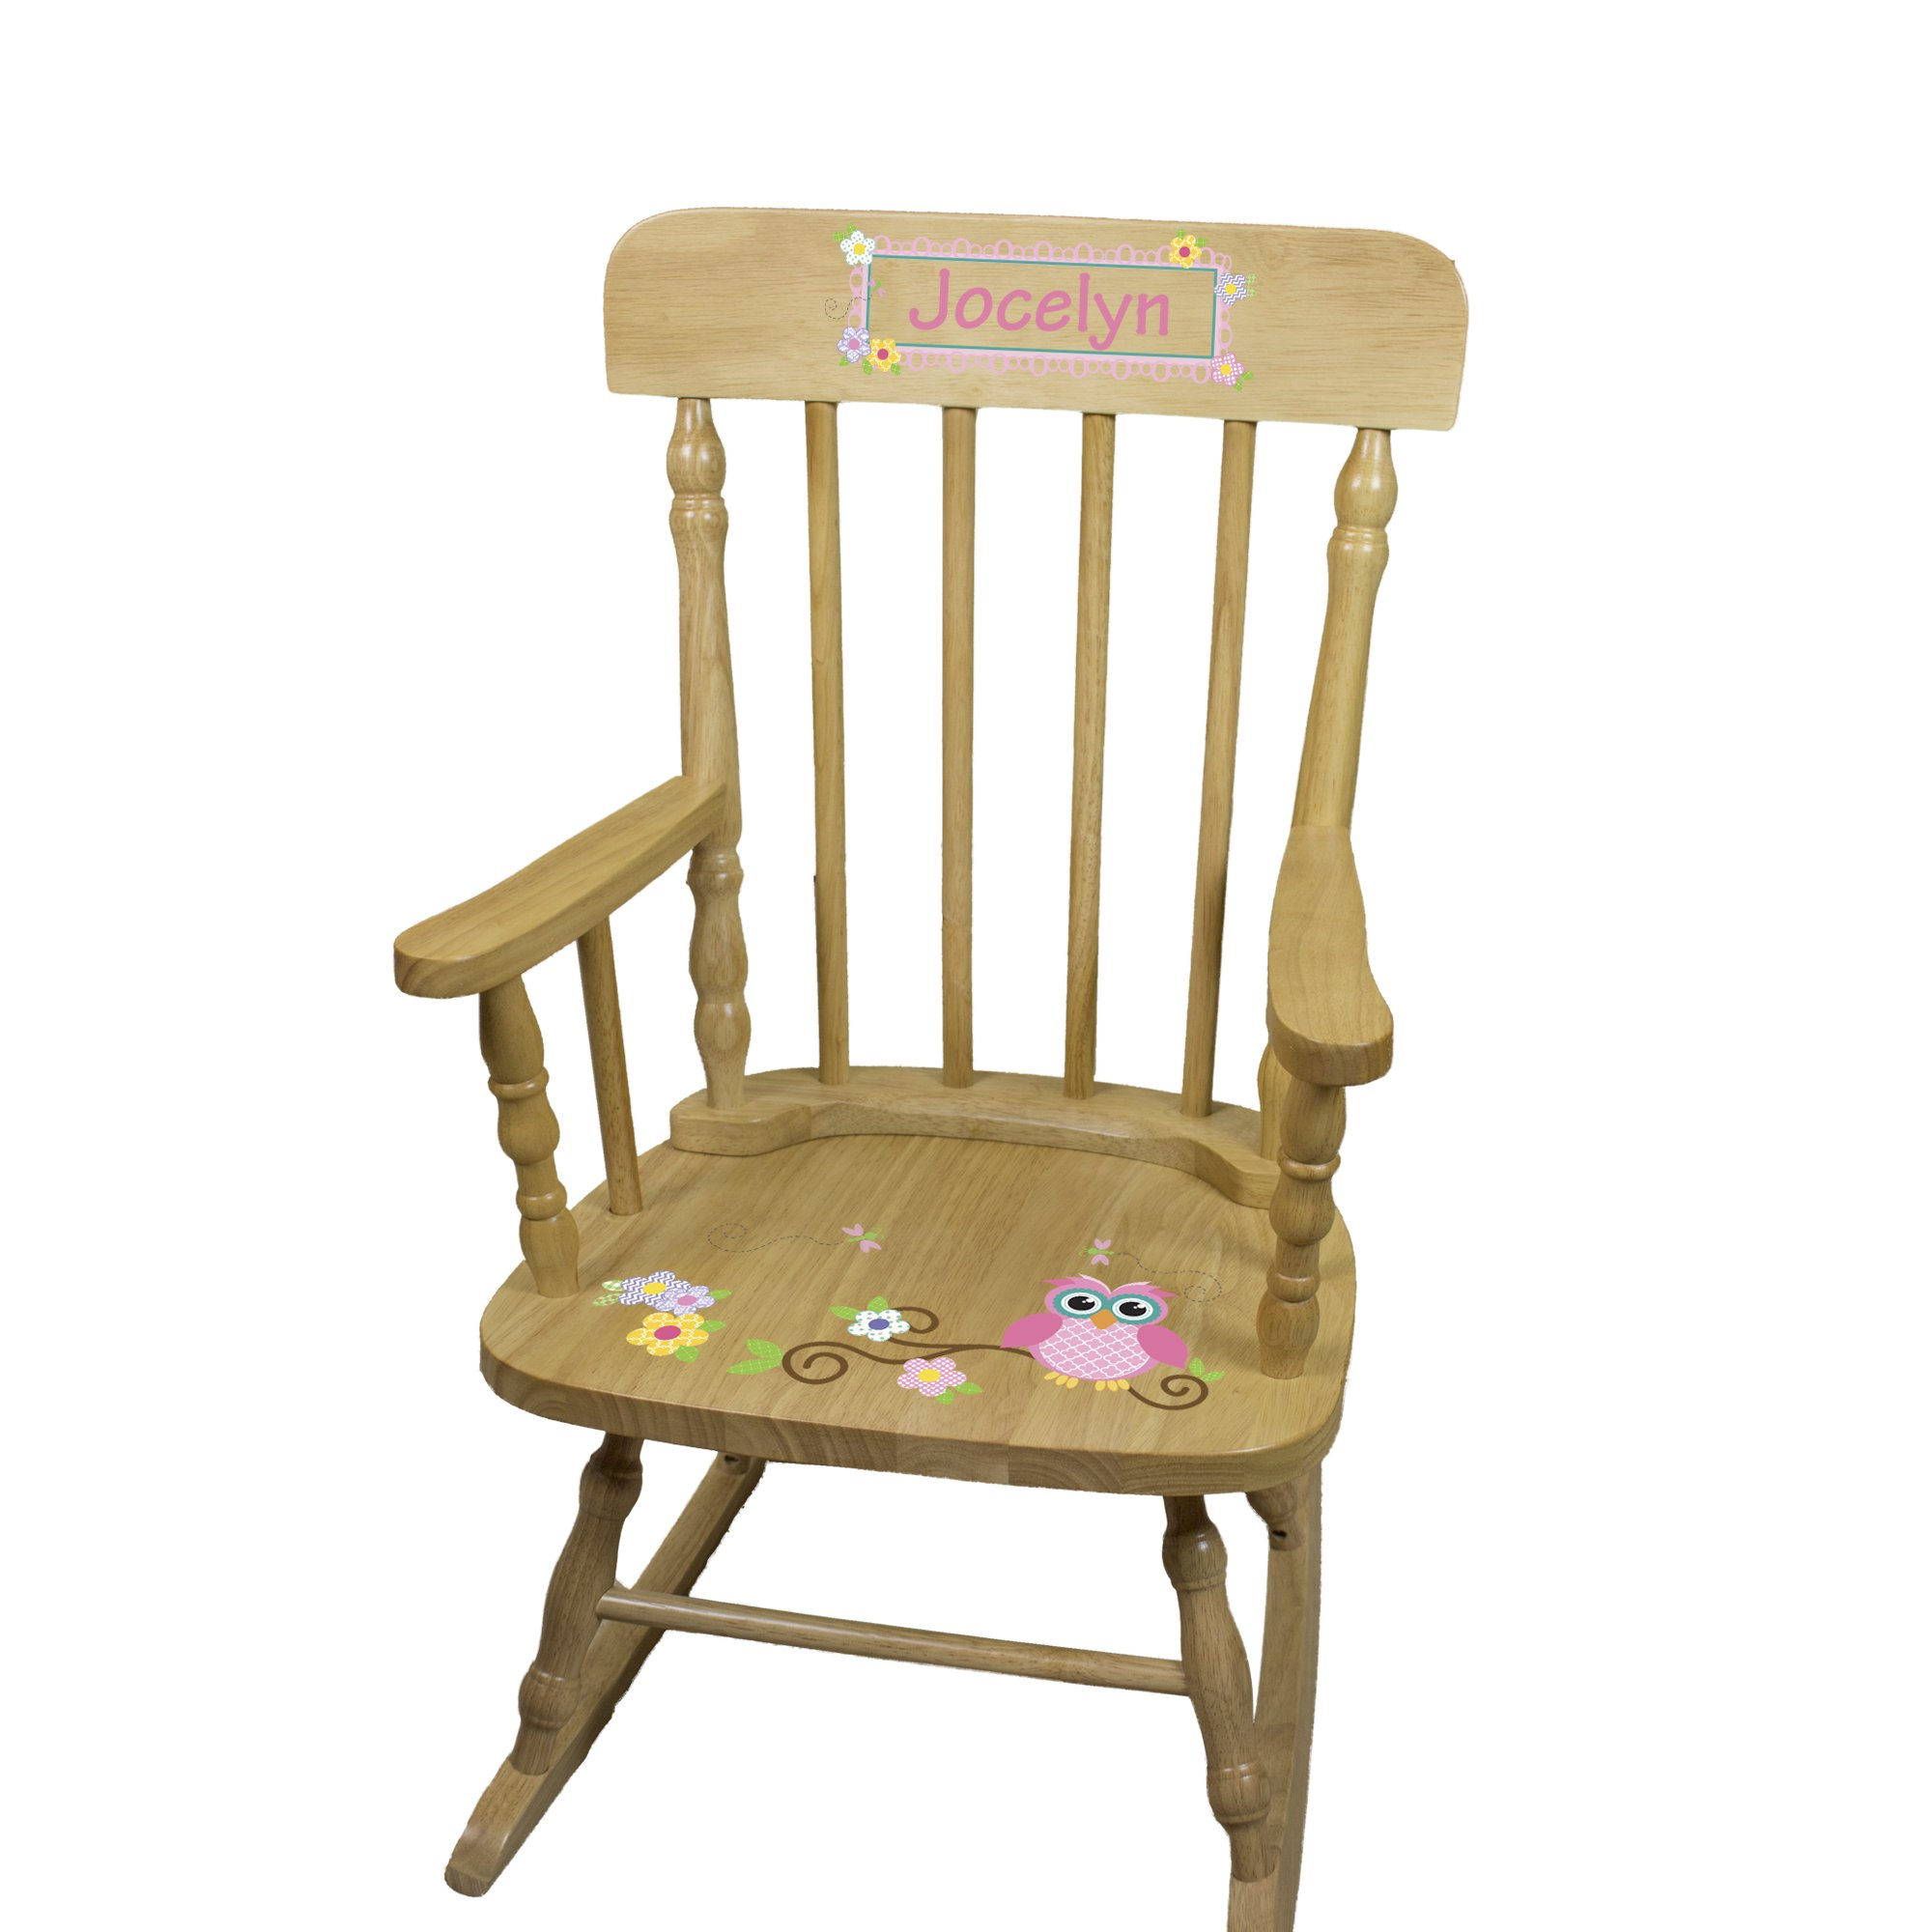 Personalized Wooden Owl Rocking Chair